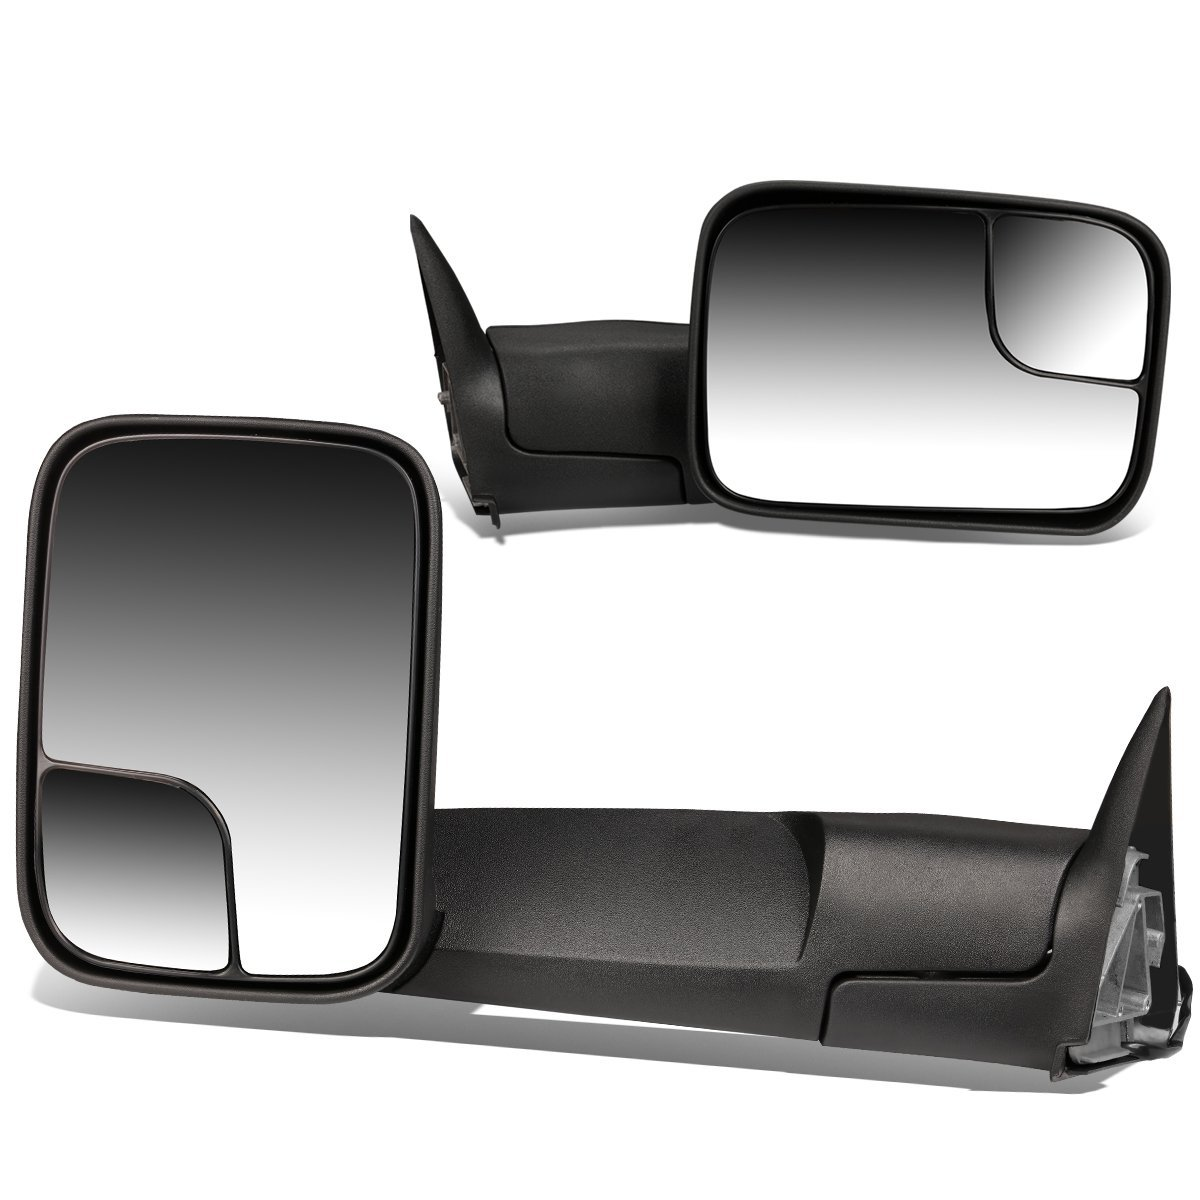 Driver Side Mirror Dodge Dynasty Dodge Dynasty Driver: 94-97 Dodge Ram [Power Adjust] Telescoping Towing Side Mirror